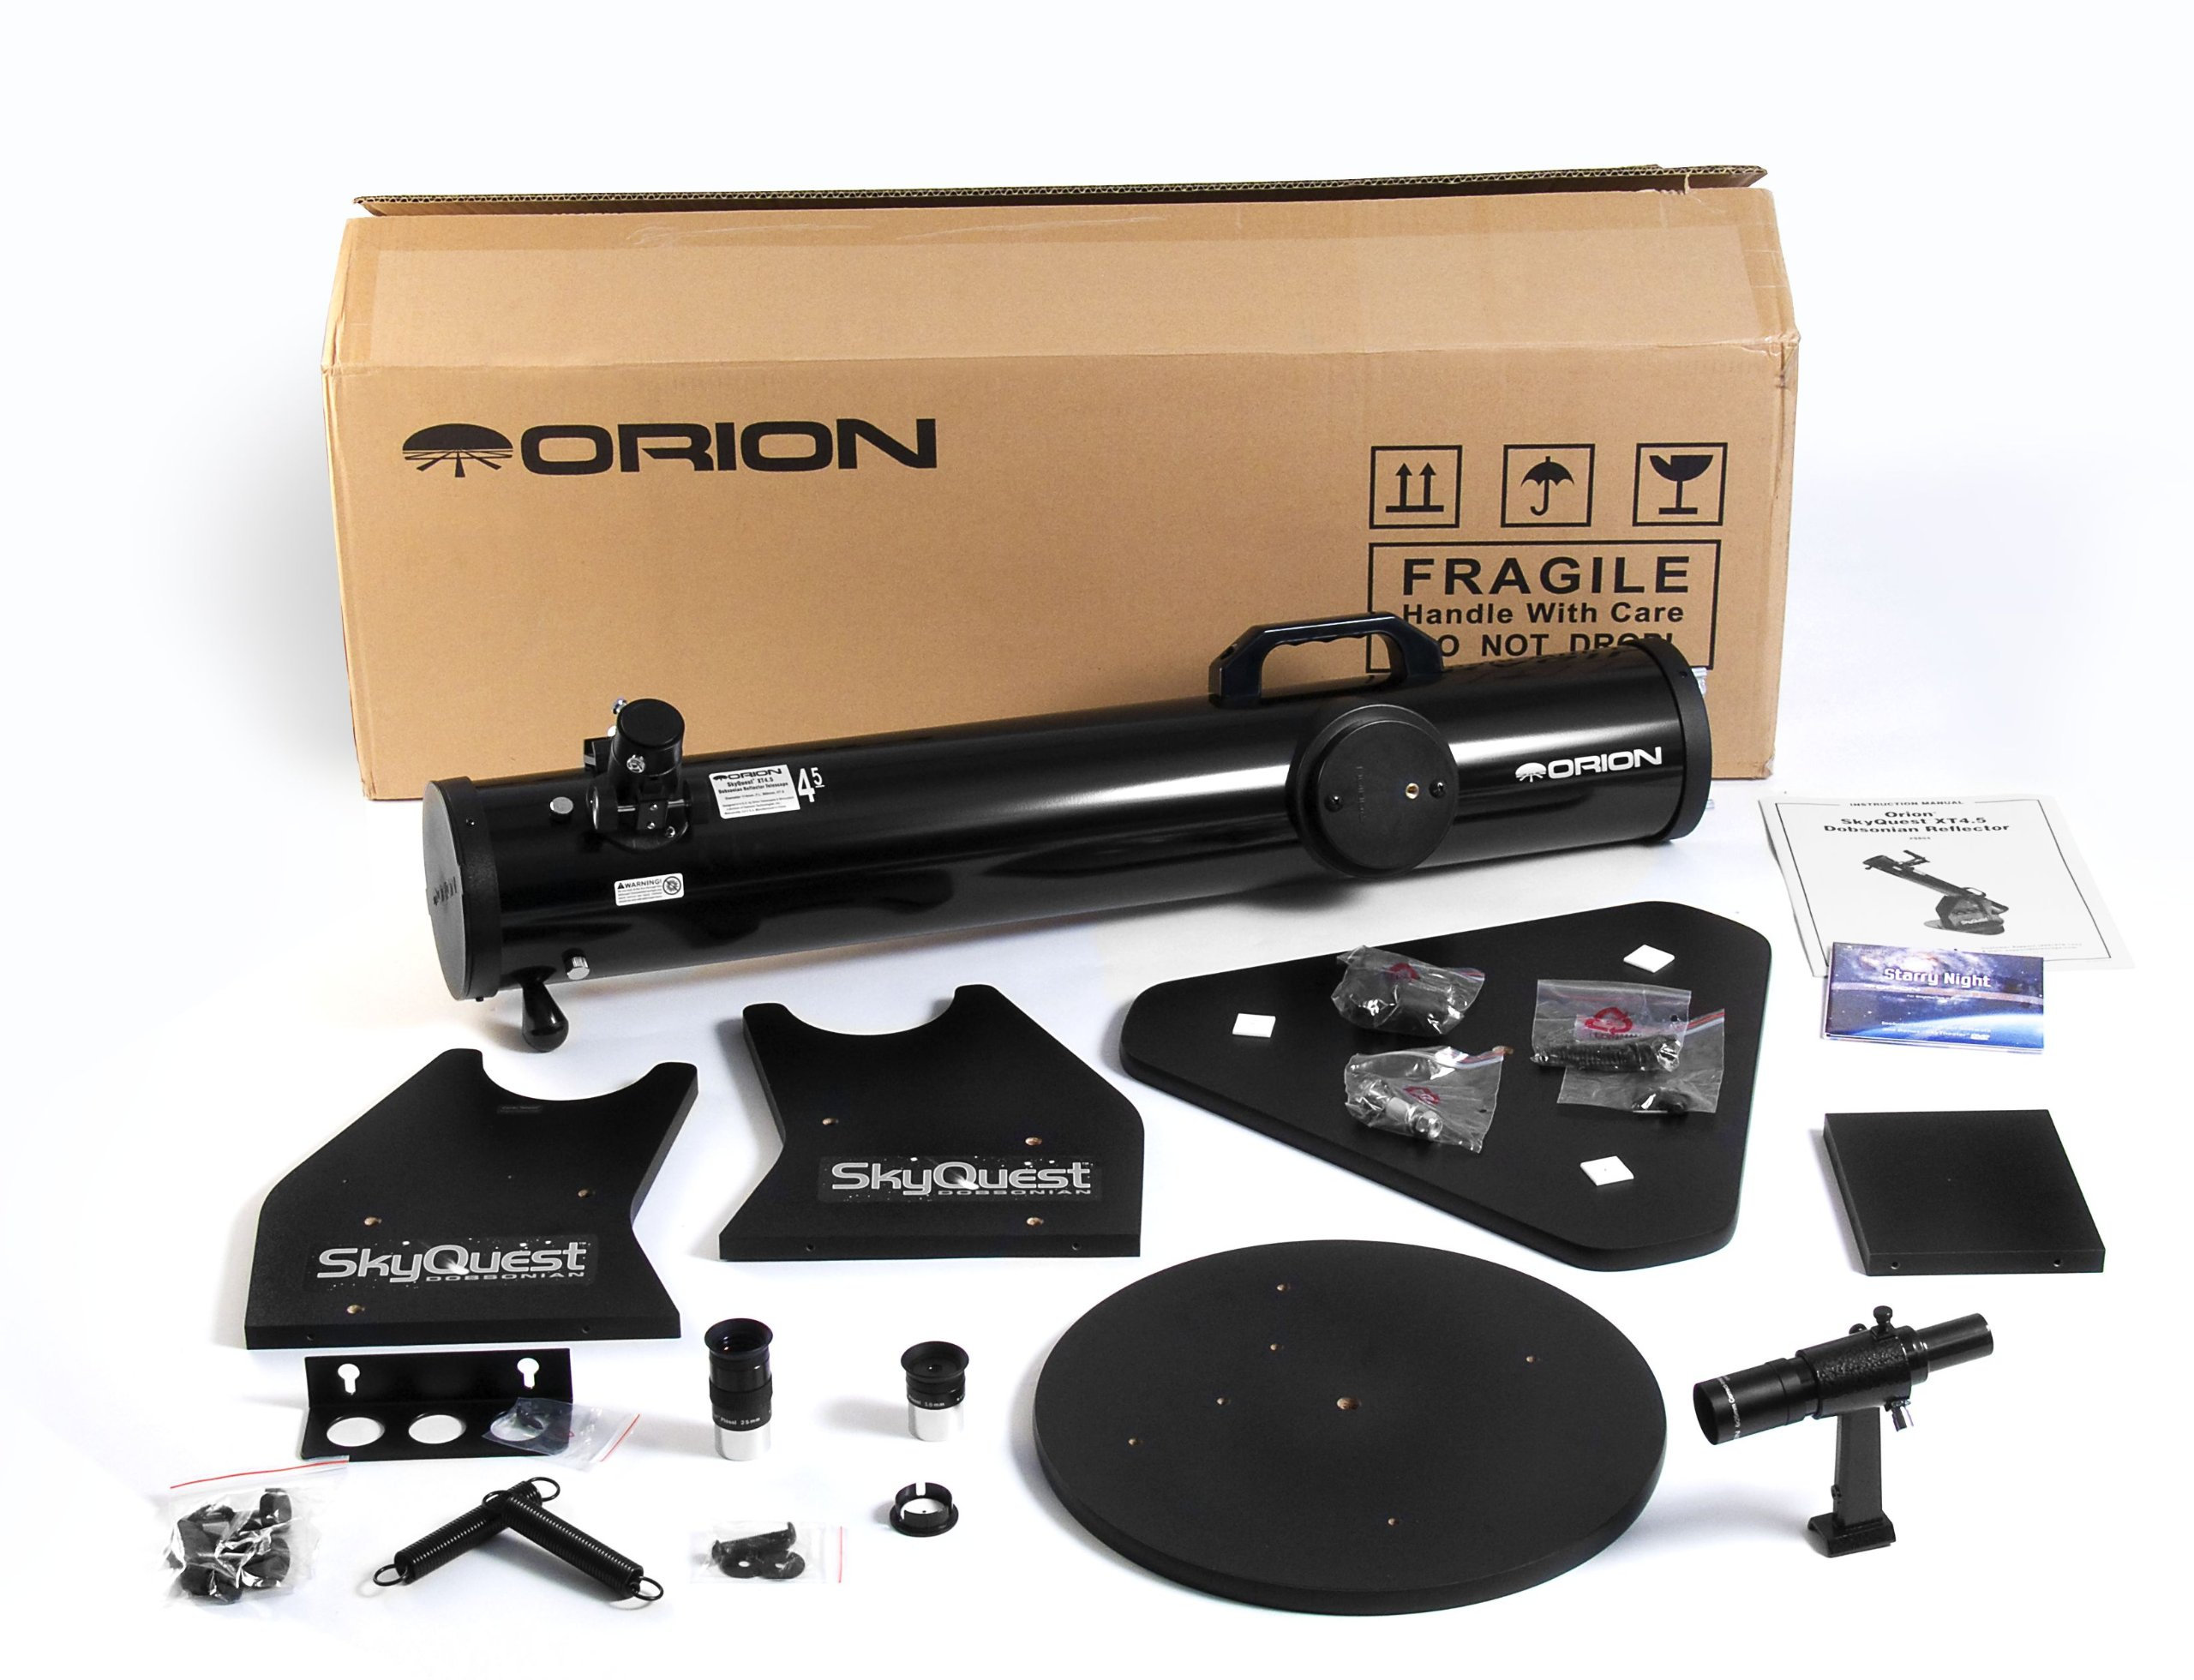 Orion 10014e 17x Black Reflector - Telescopes (88.9 cm, 8kg, 11.4cm in Metal and Wood)